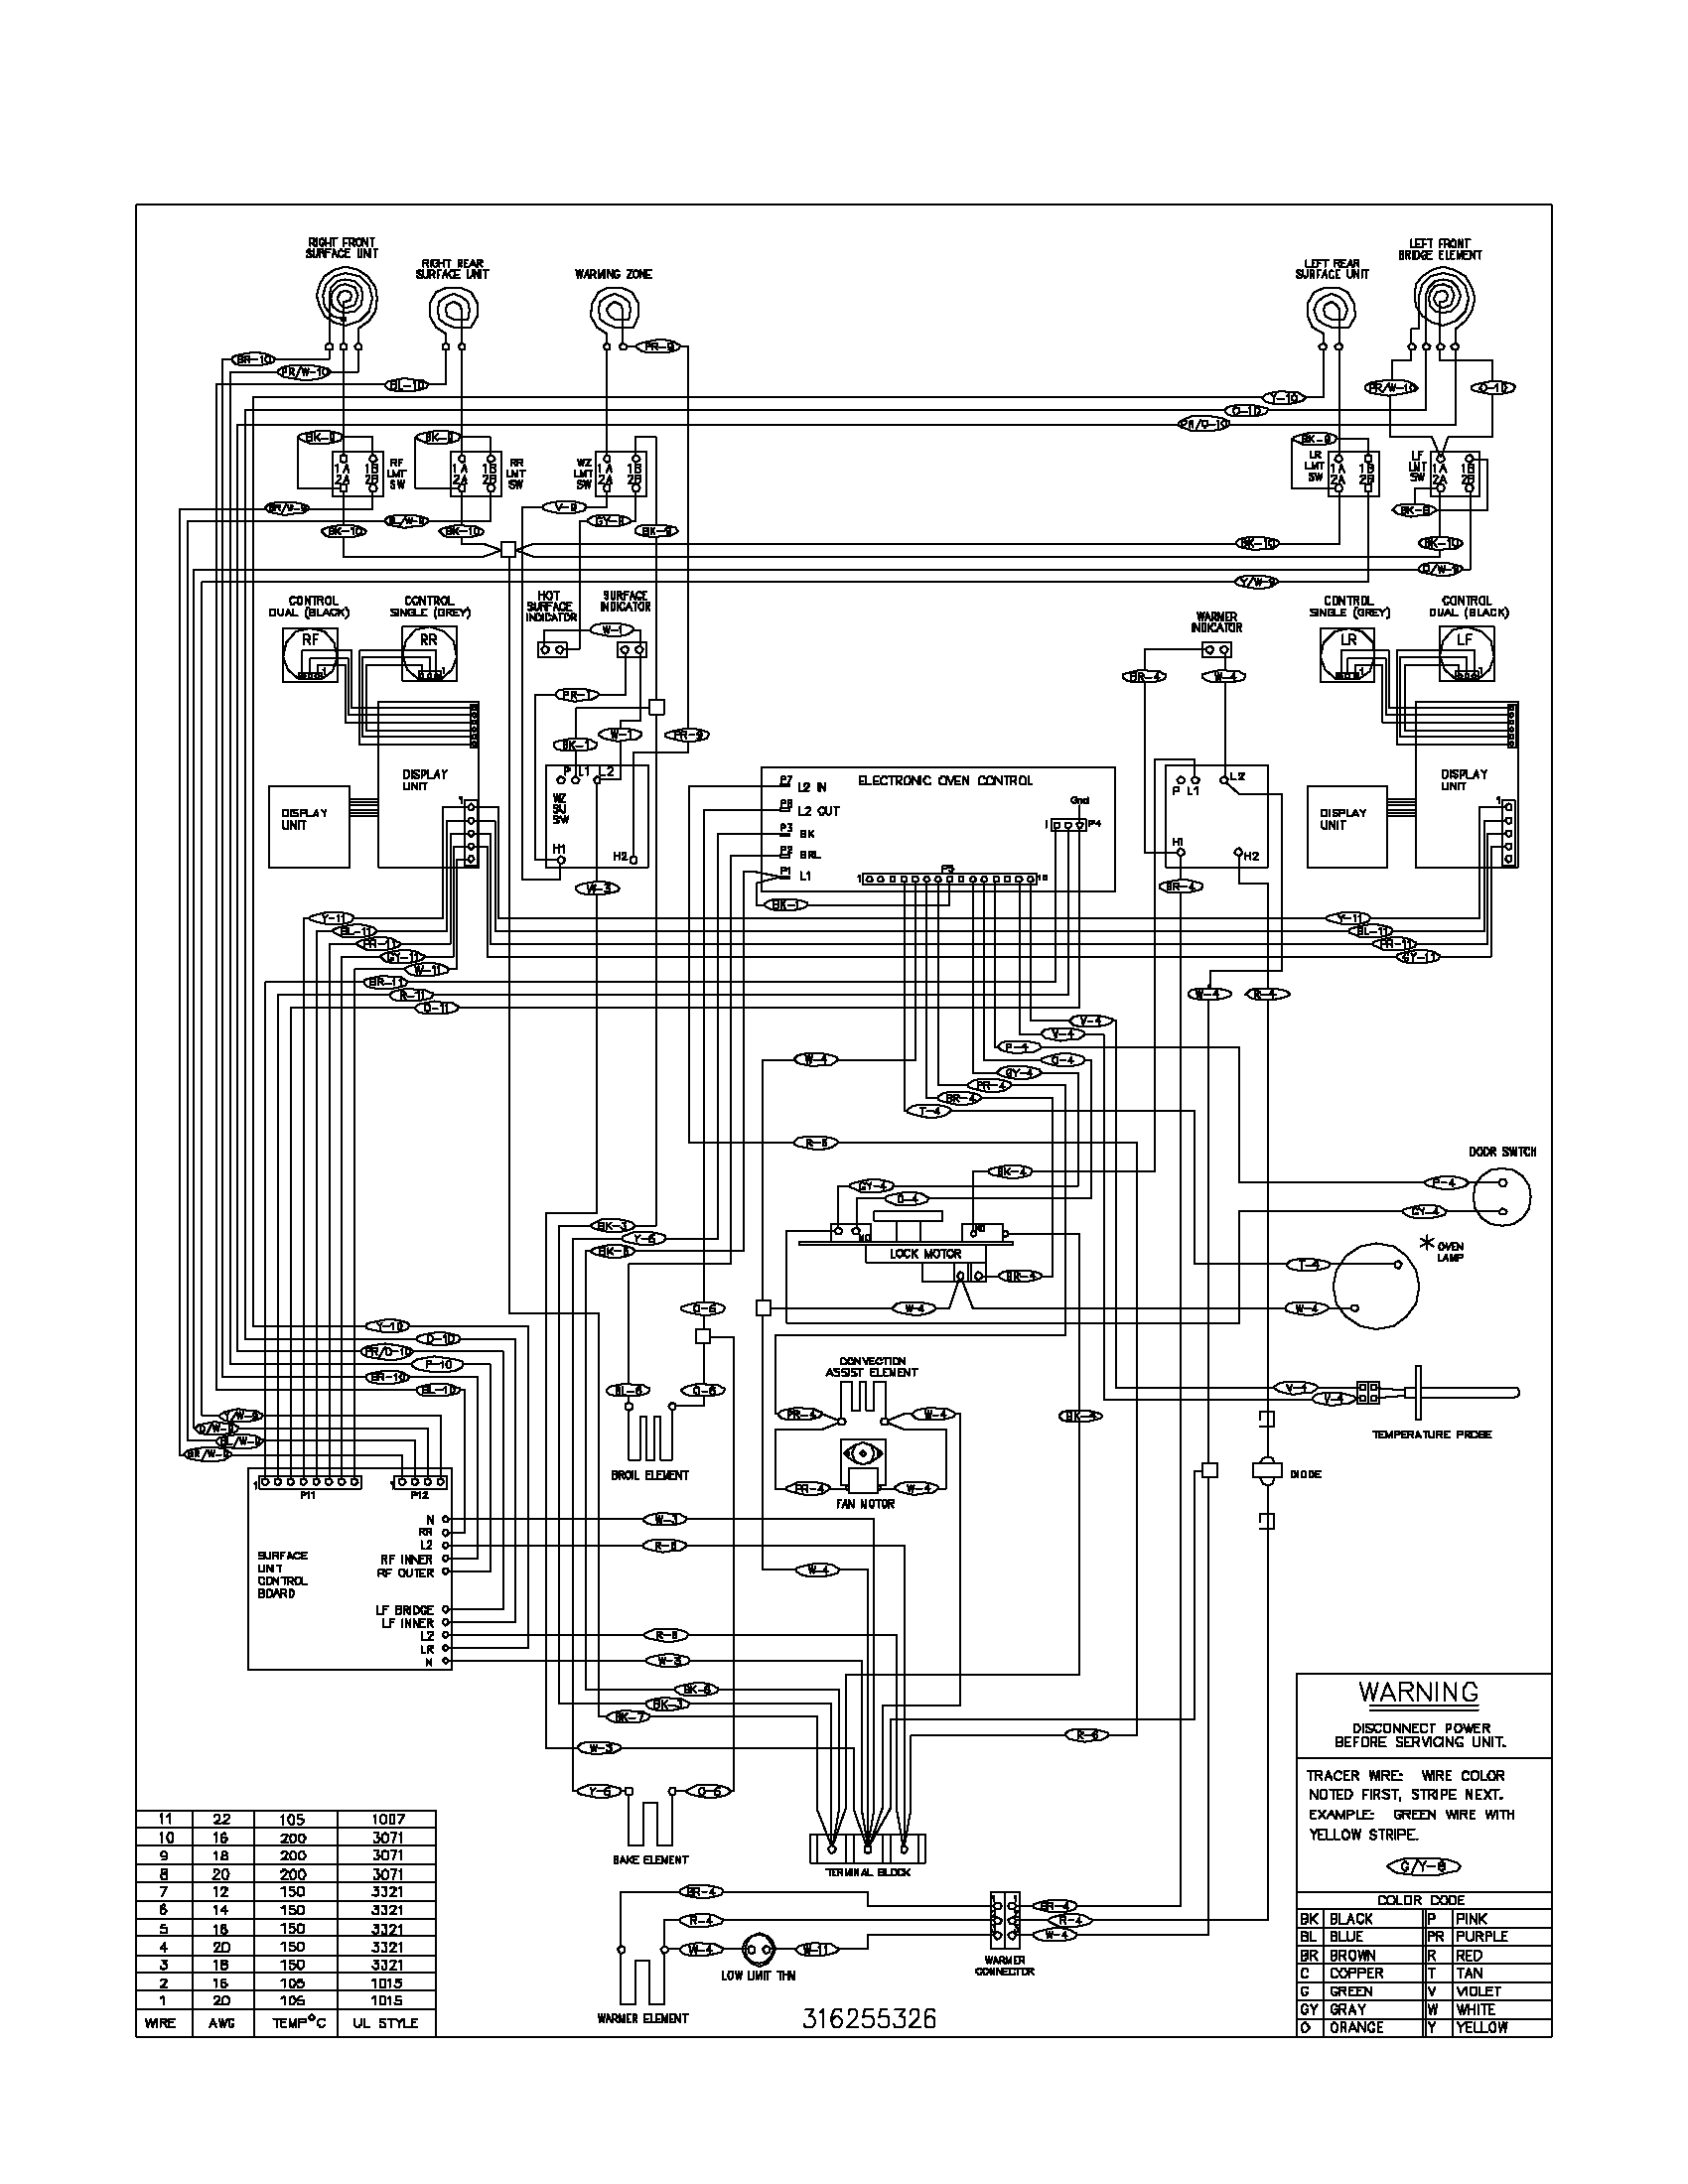 wiring diagram goodman air handler with Nordyne E2eb 015hb Thermostat Wiring Diagram on Heil Wiring Schematics in addition Heat Sequencer Wiring Diagram together with 10527 in addition 522311 Carrier Ac Heat Pump Runs Few Minutes Stops further Dual Run Capacitor Wiring Diagram.